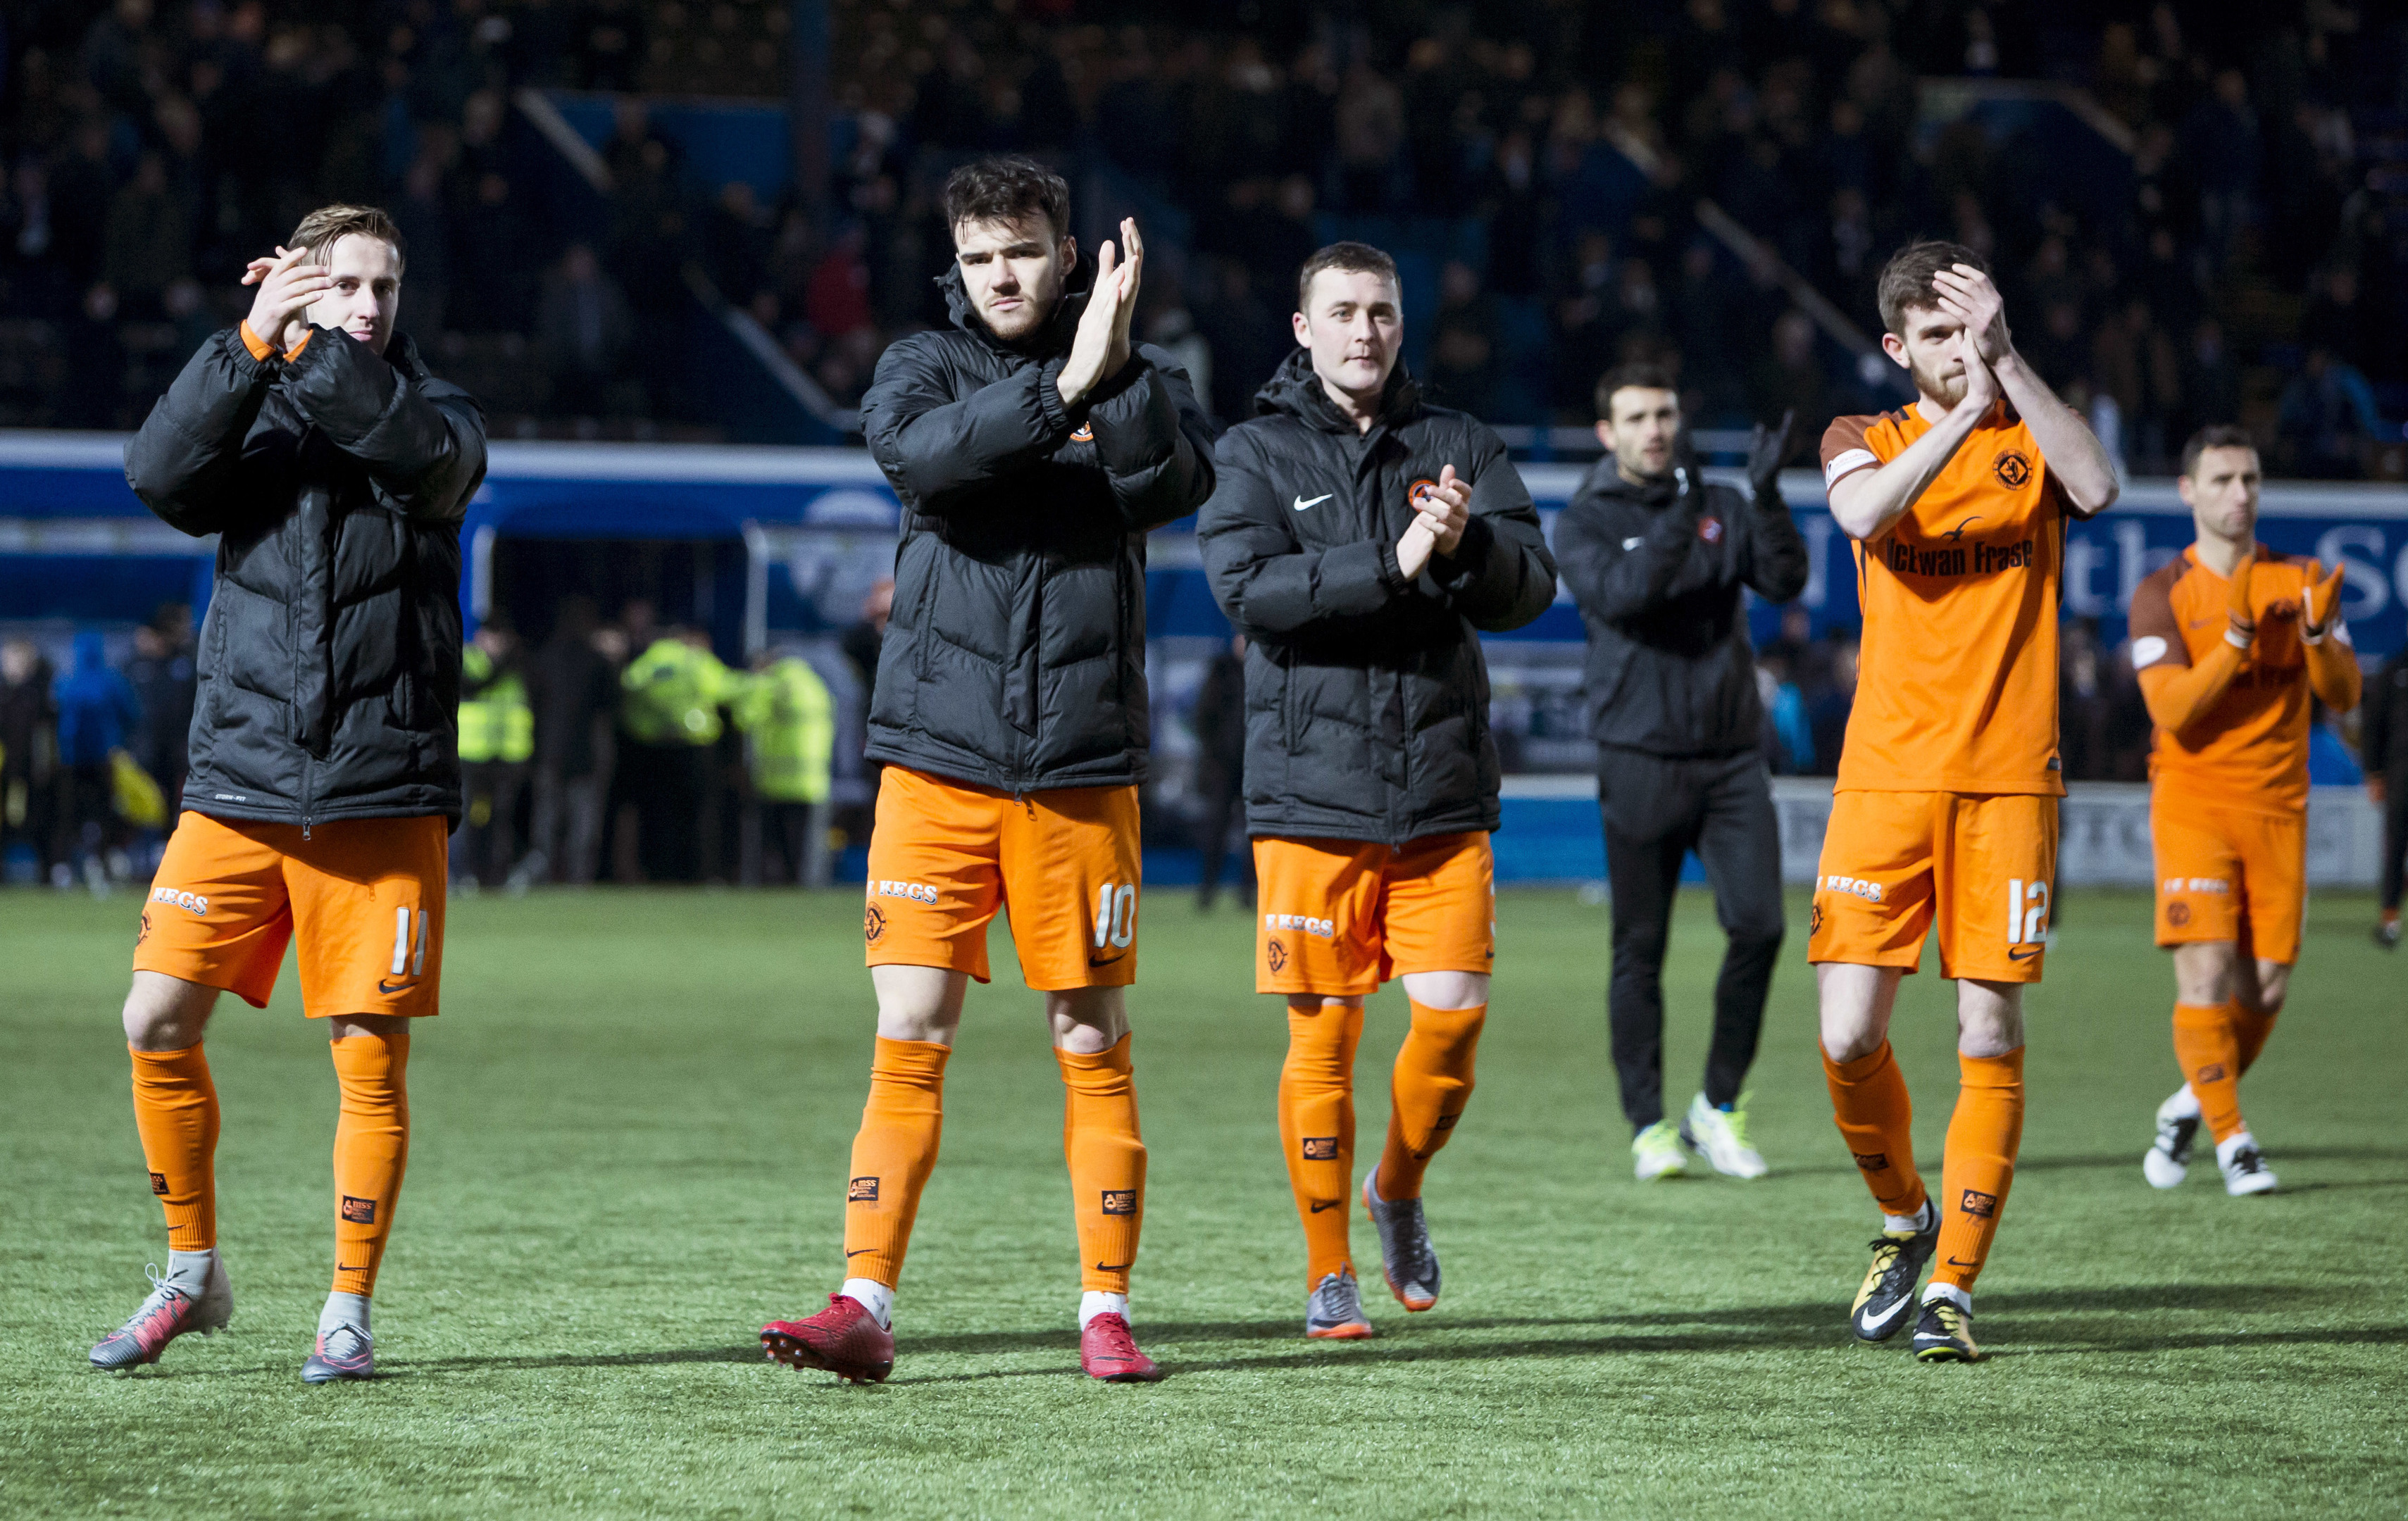 The Dundee United players on the pitch after the match is abandoned.